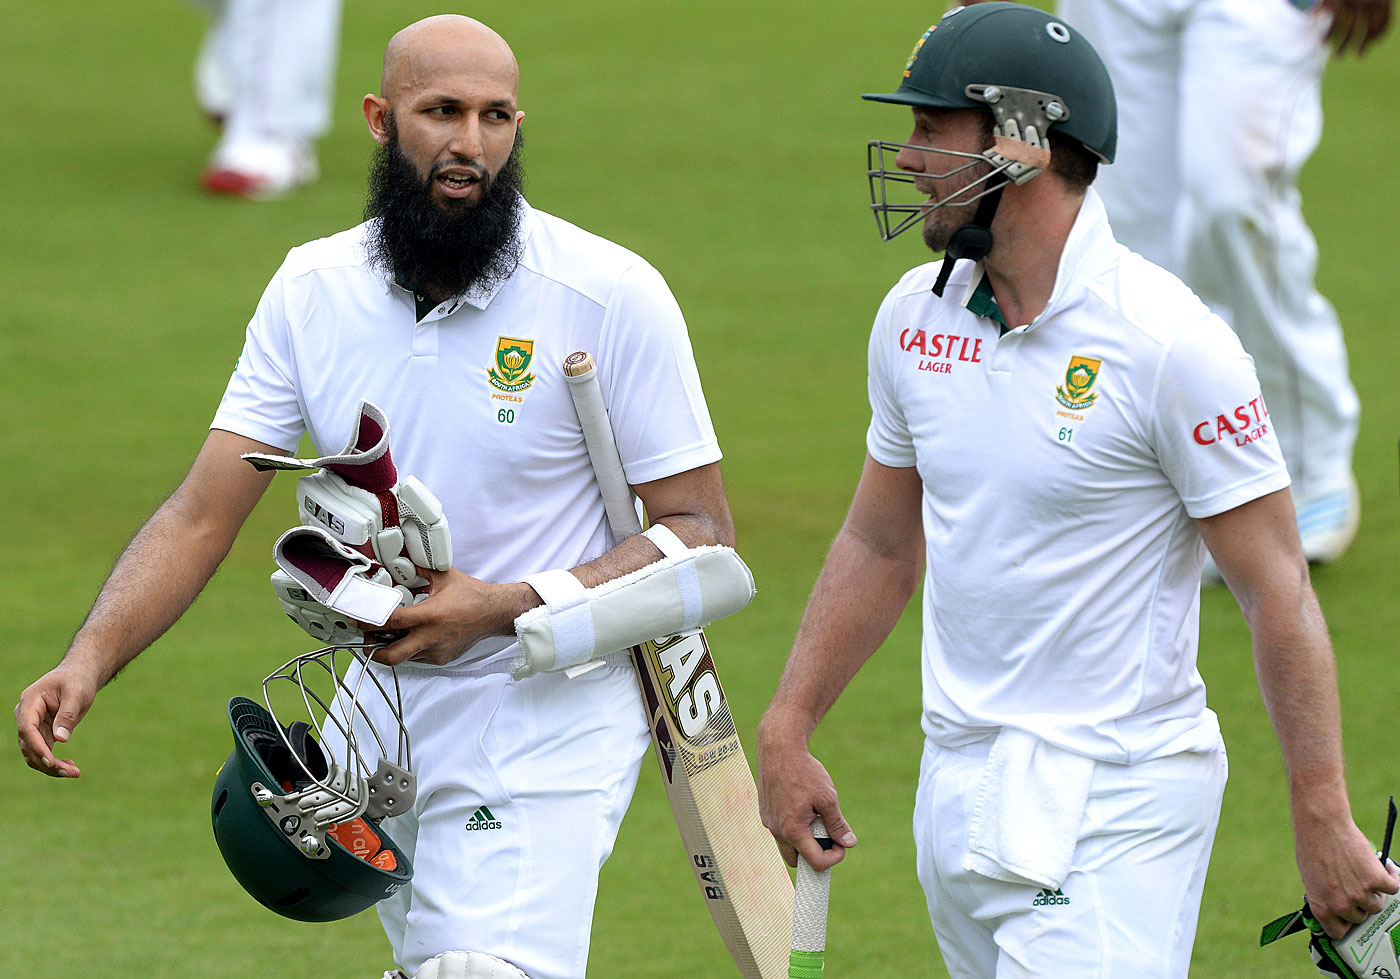 Amla and de Villiers both fail in the same innings so rarely that we aren't quite sure how the rest of South Africa's top six stand up to major pressure